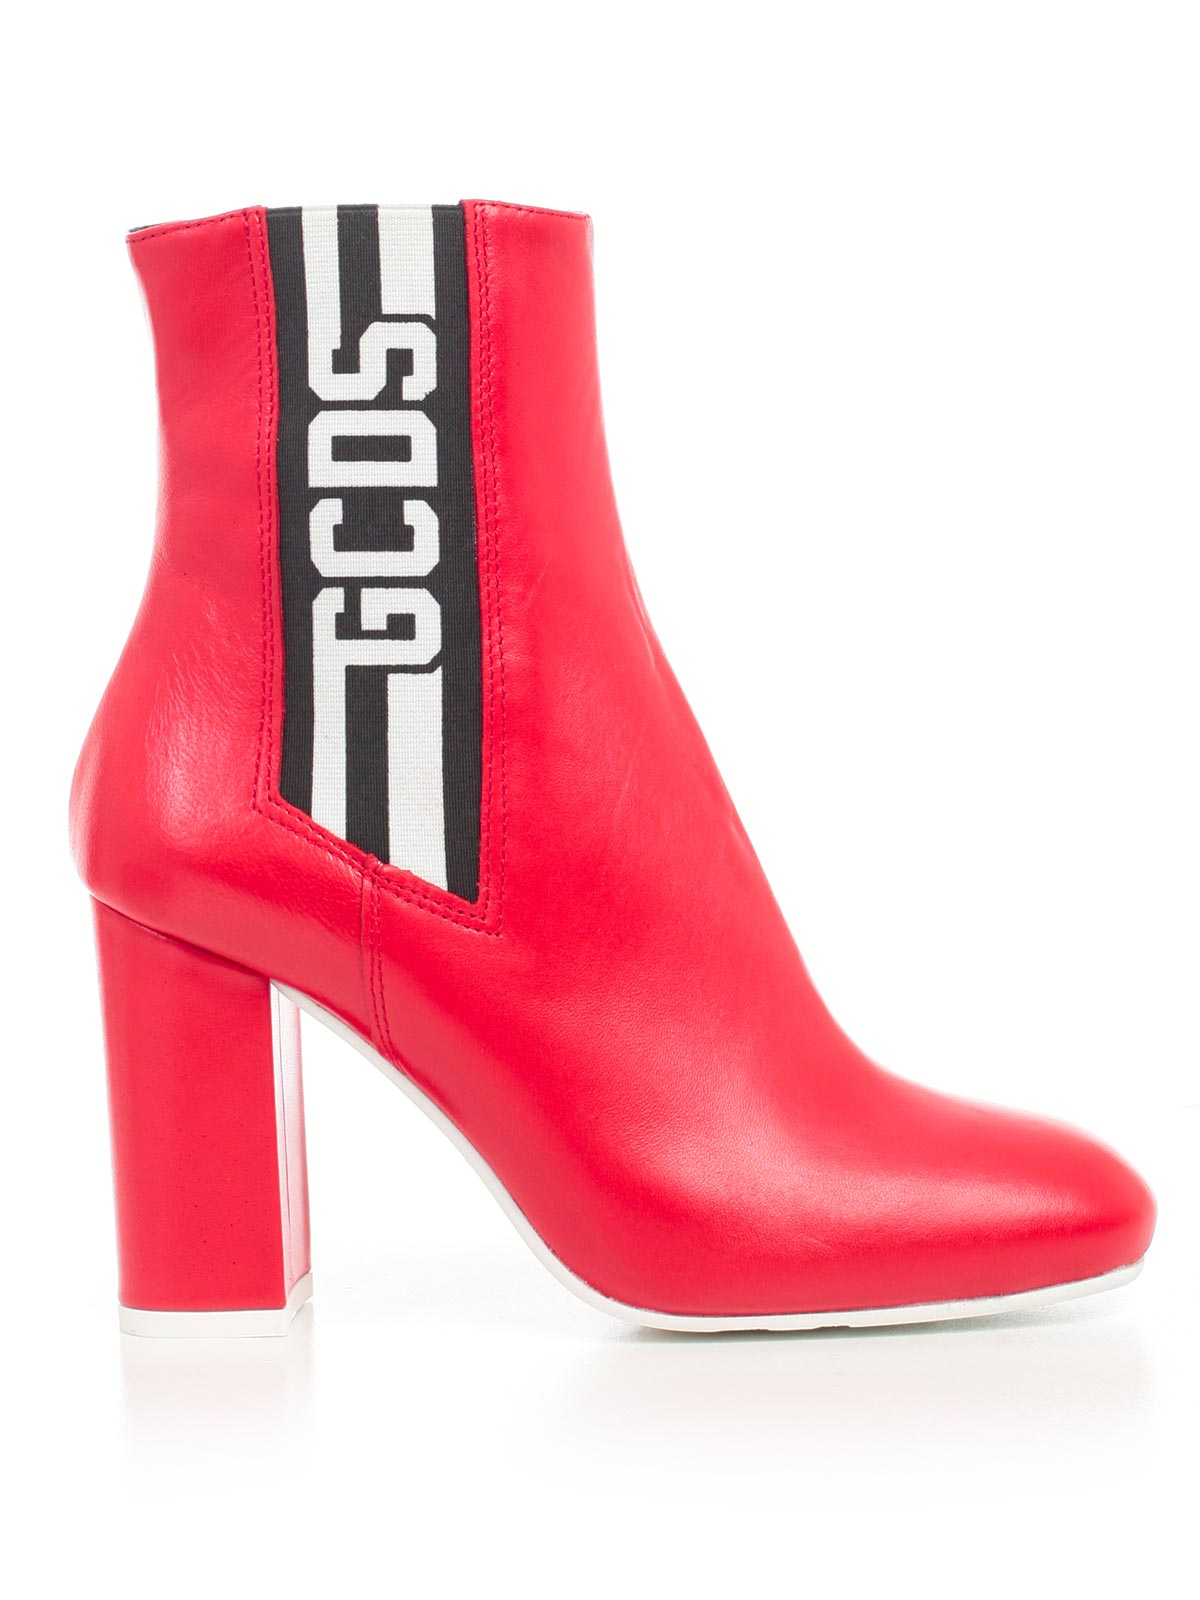 Picture of Gcds Boots